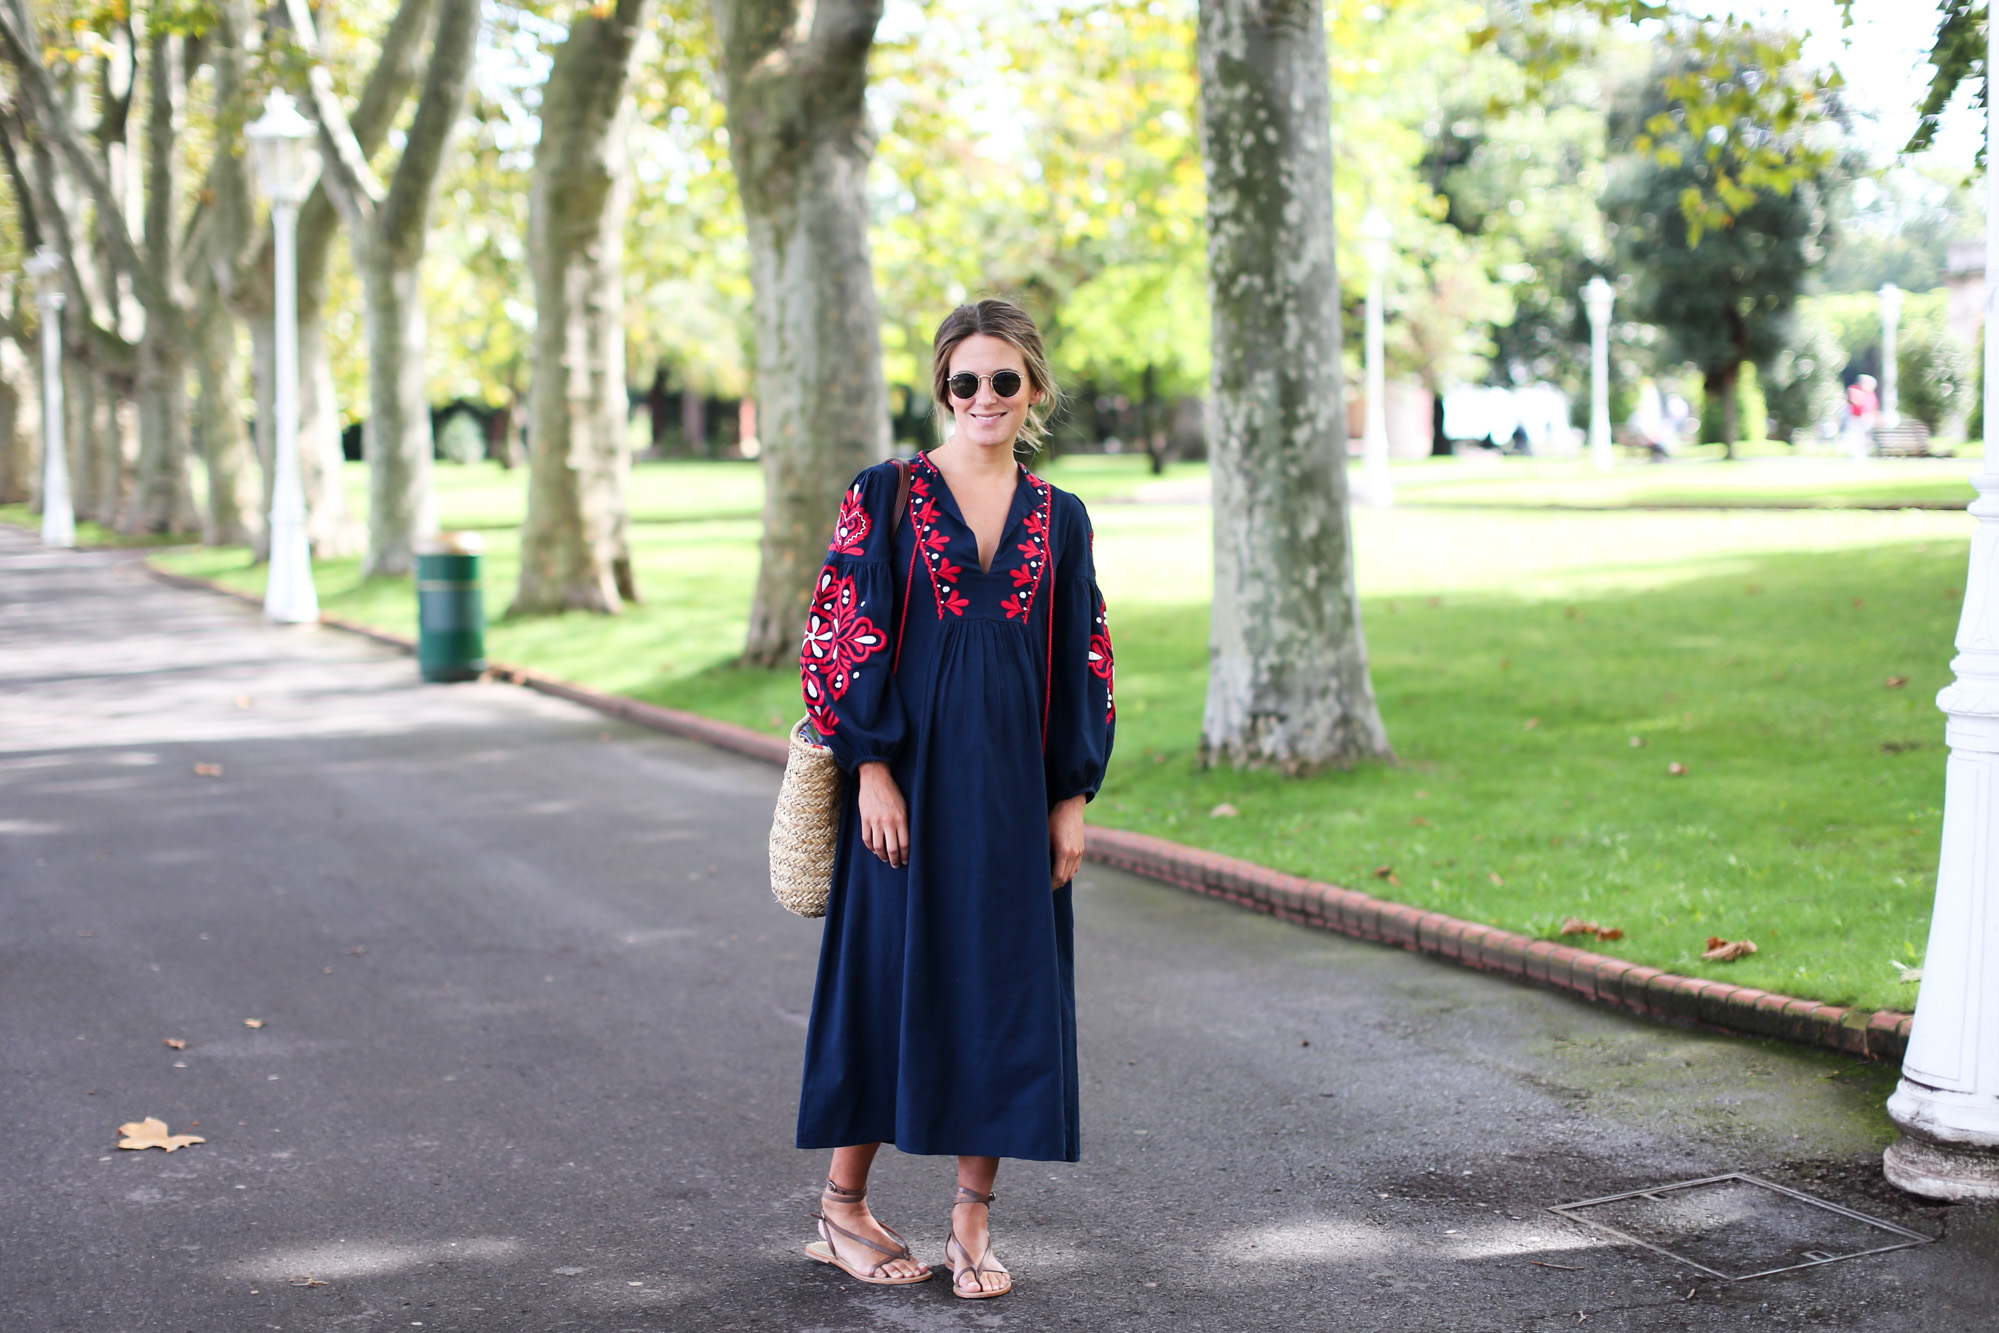 Clochet_streetstyle_fashionblogger_bilbao_zara_embroided_traditional_dress_strawbag-2